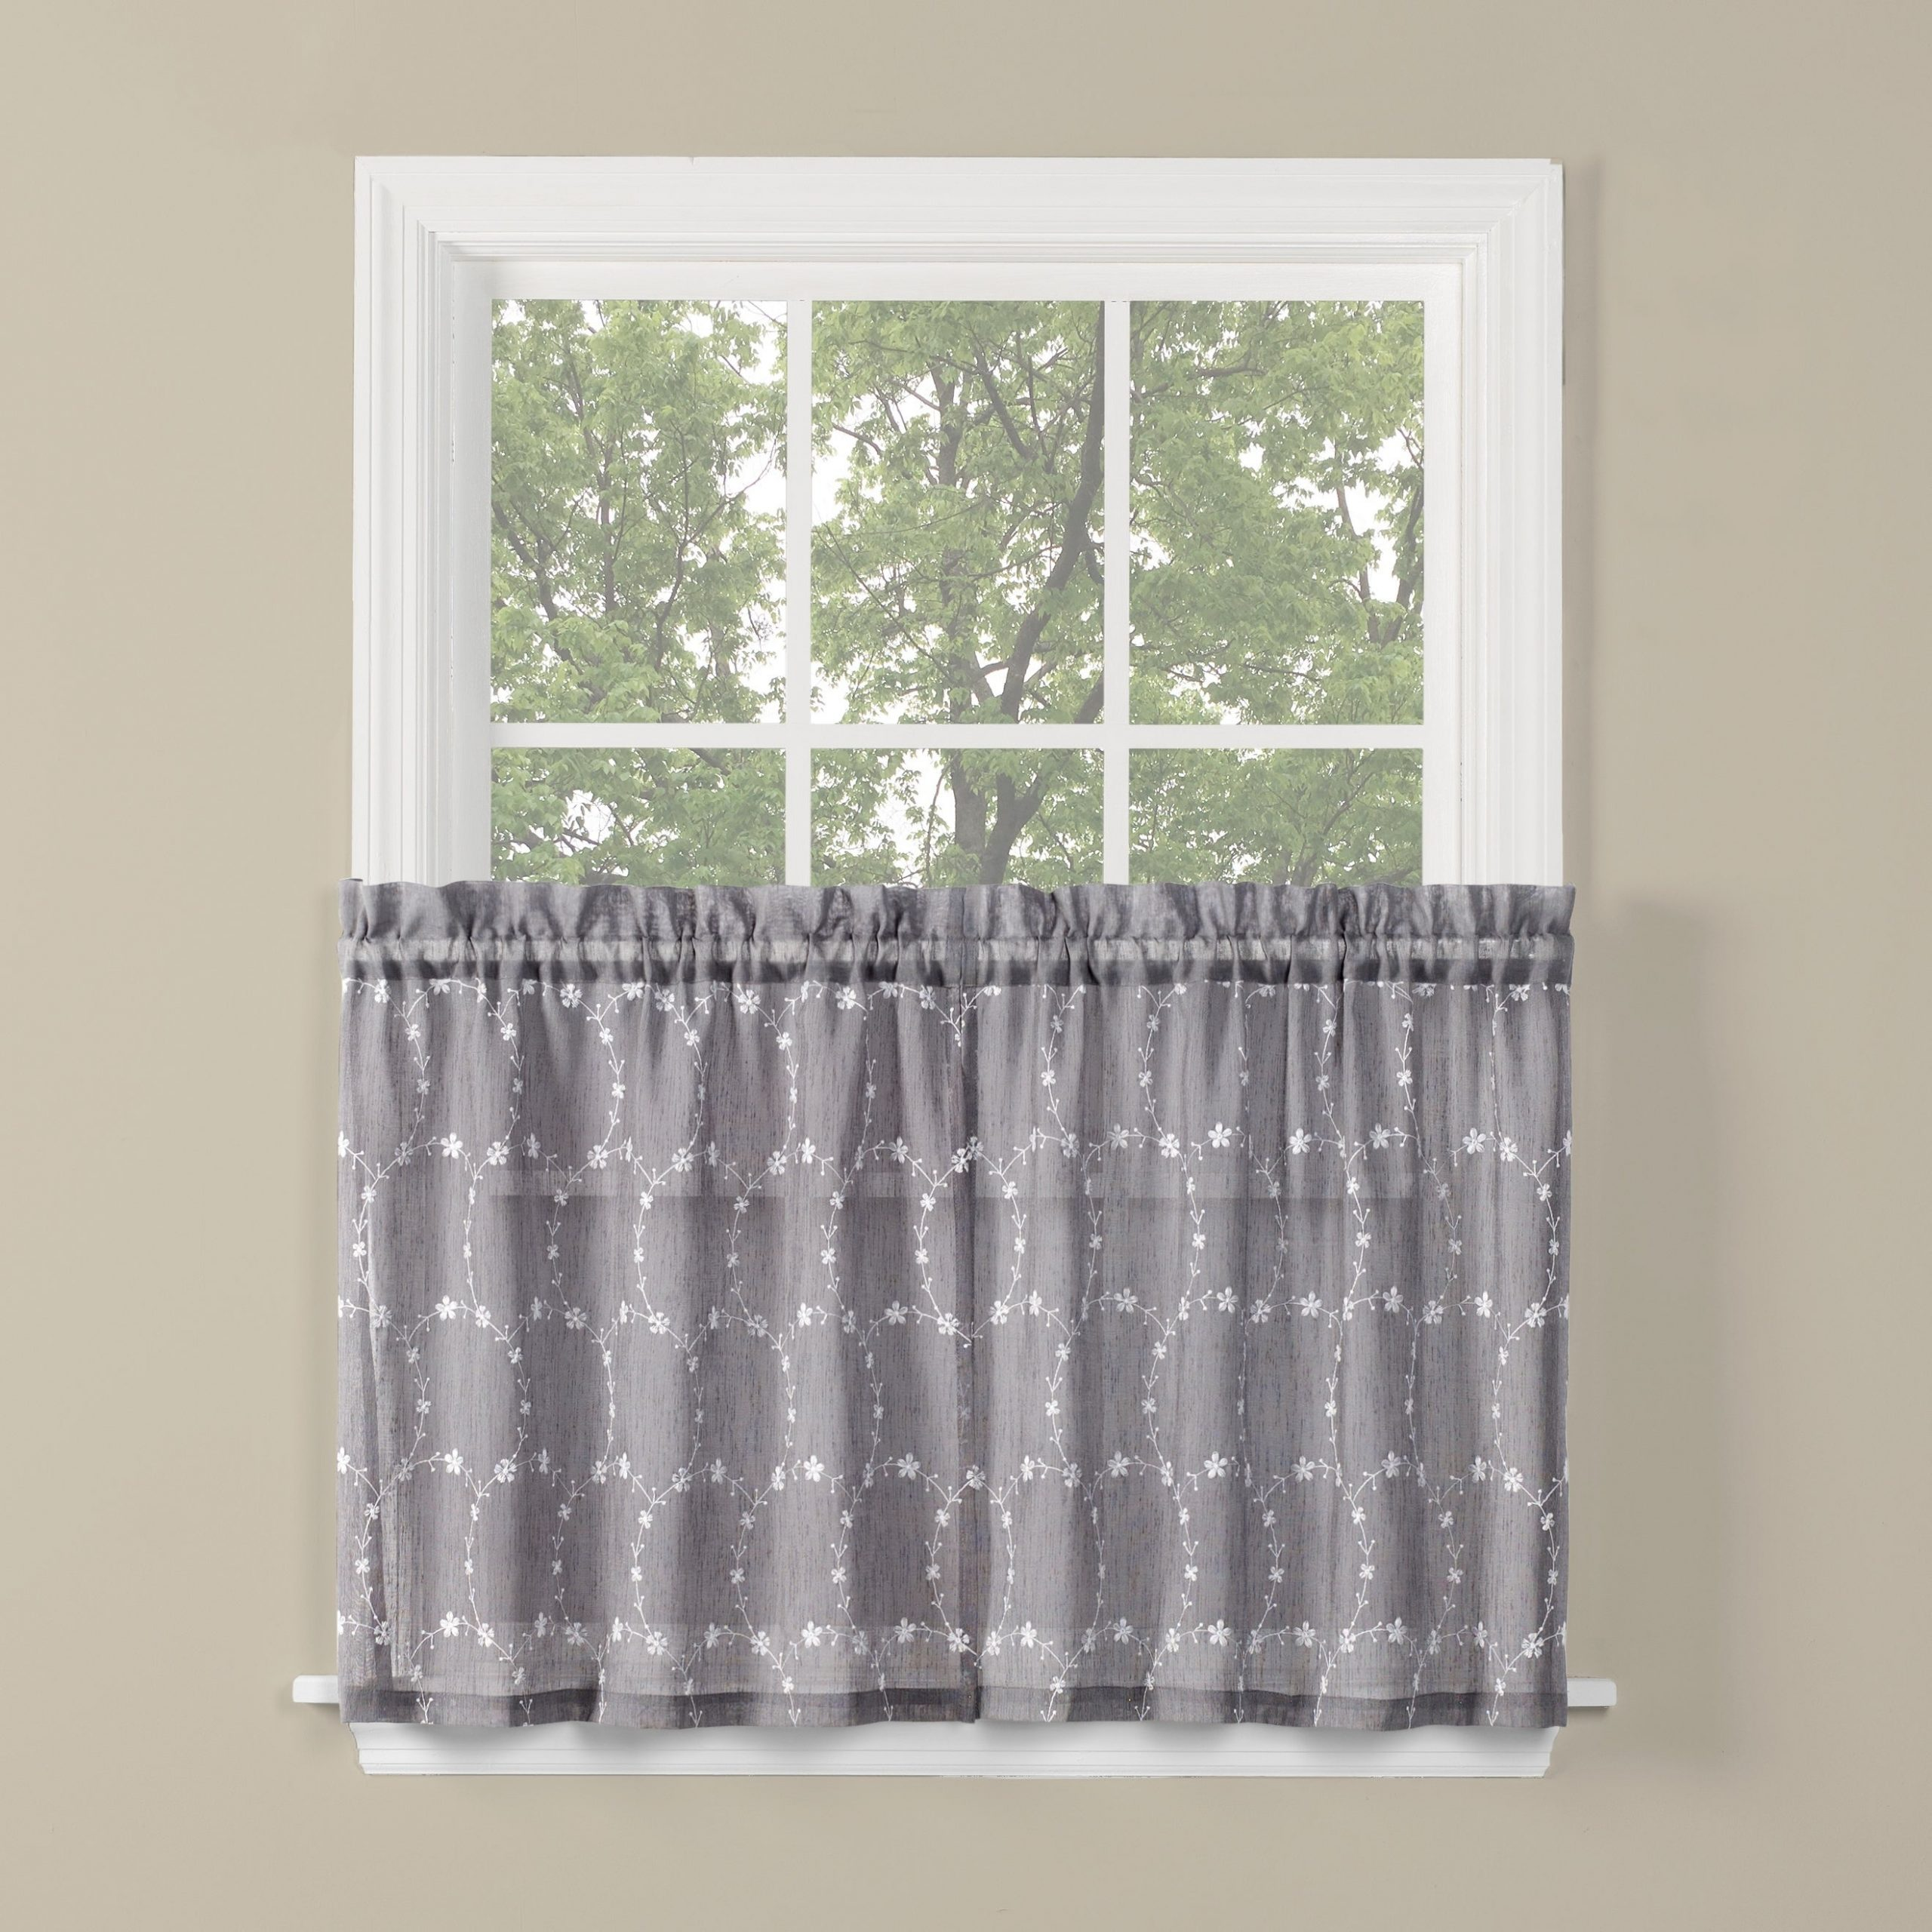 Skl Home Briarwood 24 Inch Tier Pair In Dove Gray Inside Flinders Forge 30 Inch Tiers In Dove Grey (View 4 of 20)